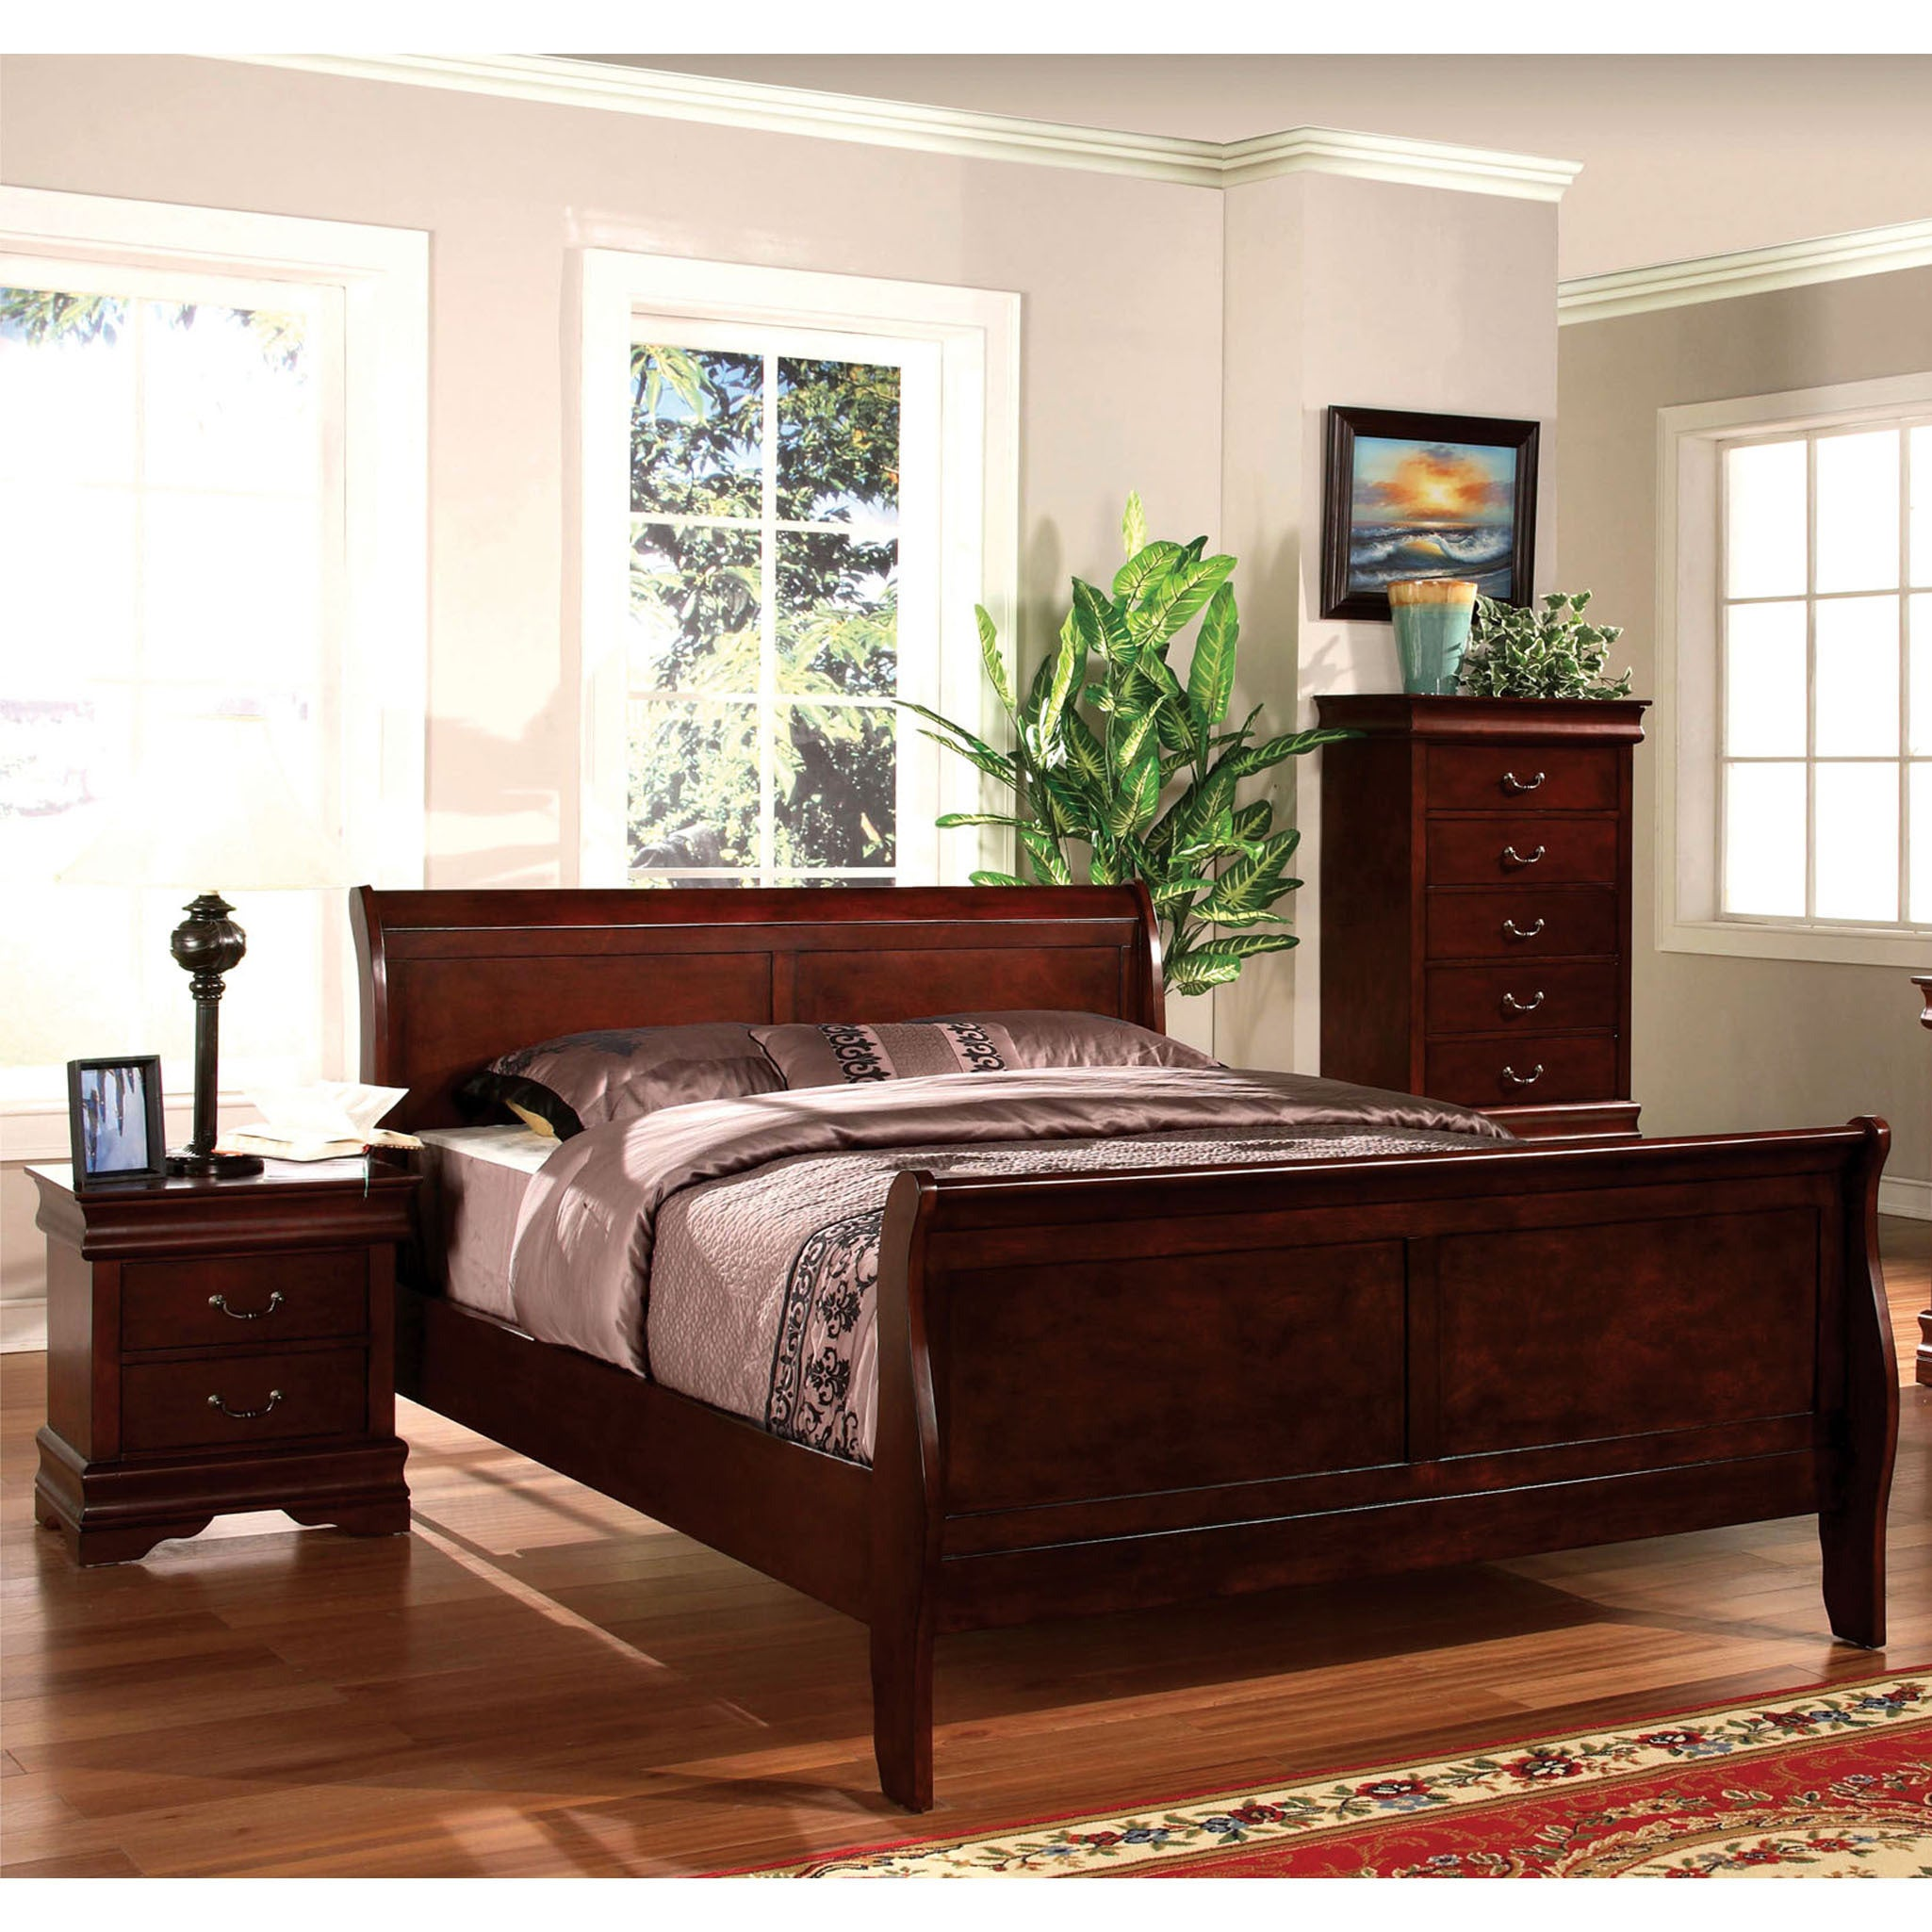 Furniture of America Mayday Paneled Sleigh Bed (Cal King ...